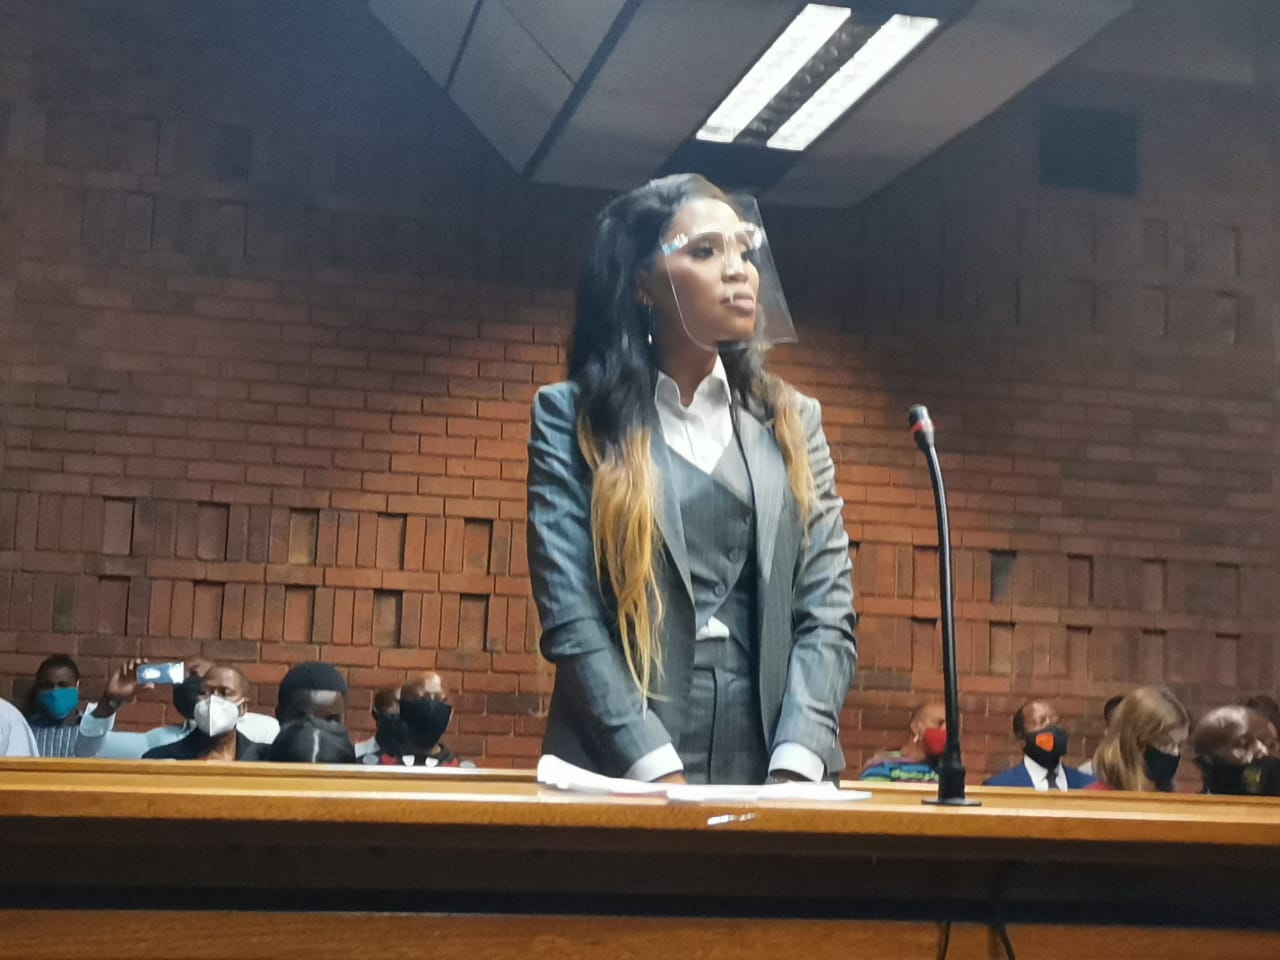 Malusi Gigaba got me arrested to teach me a lesson – Norma speaks out